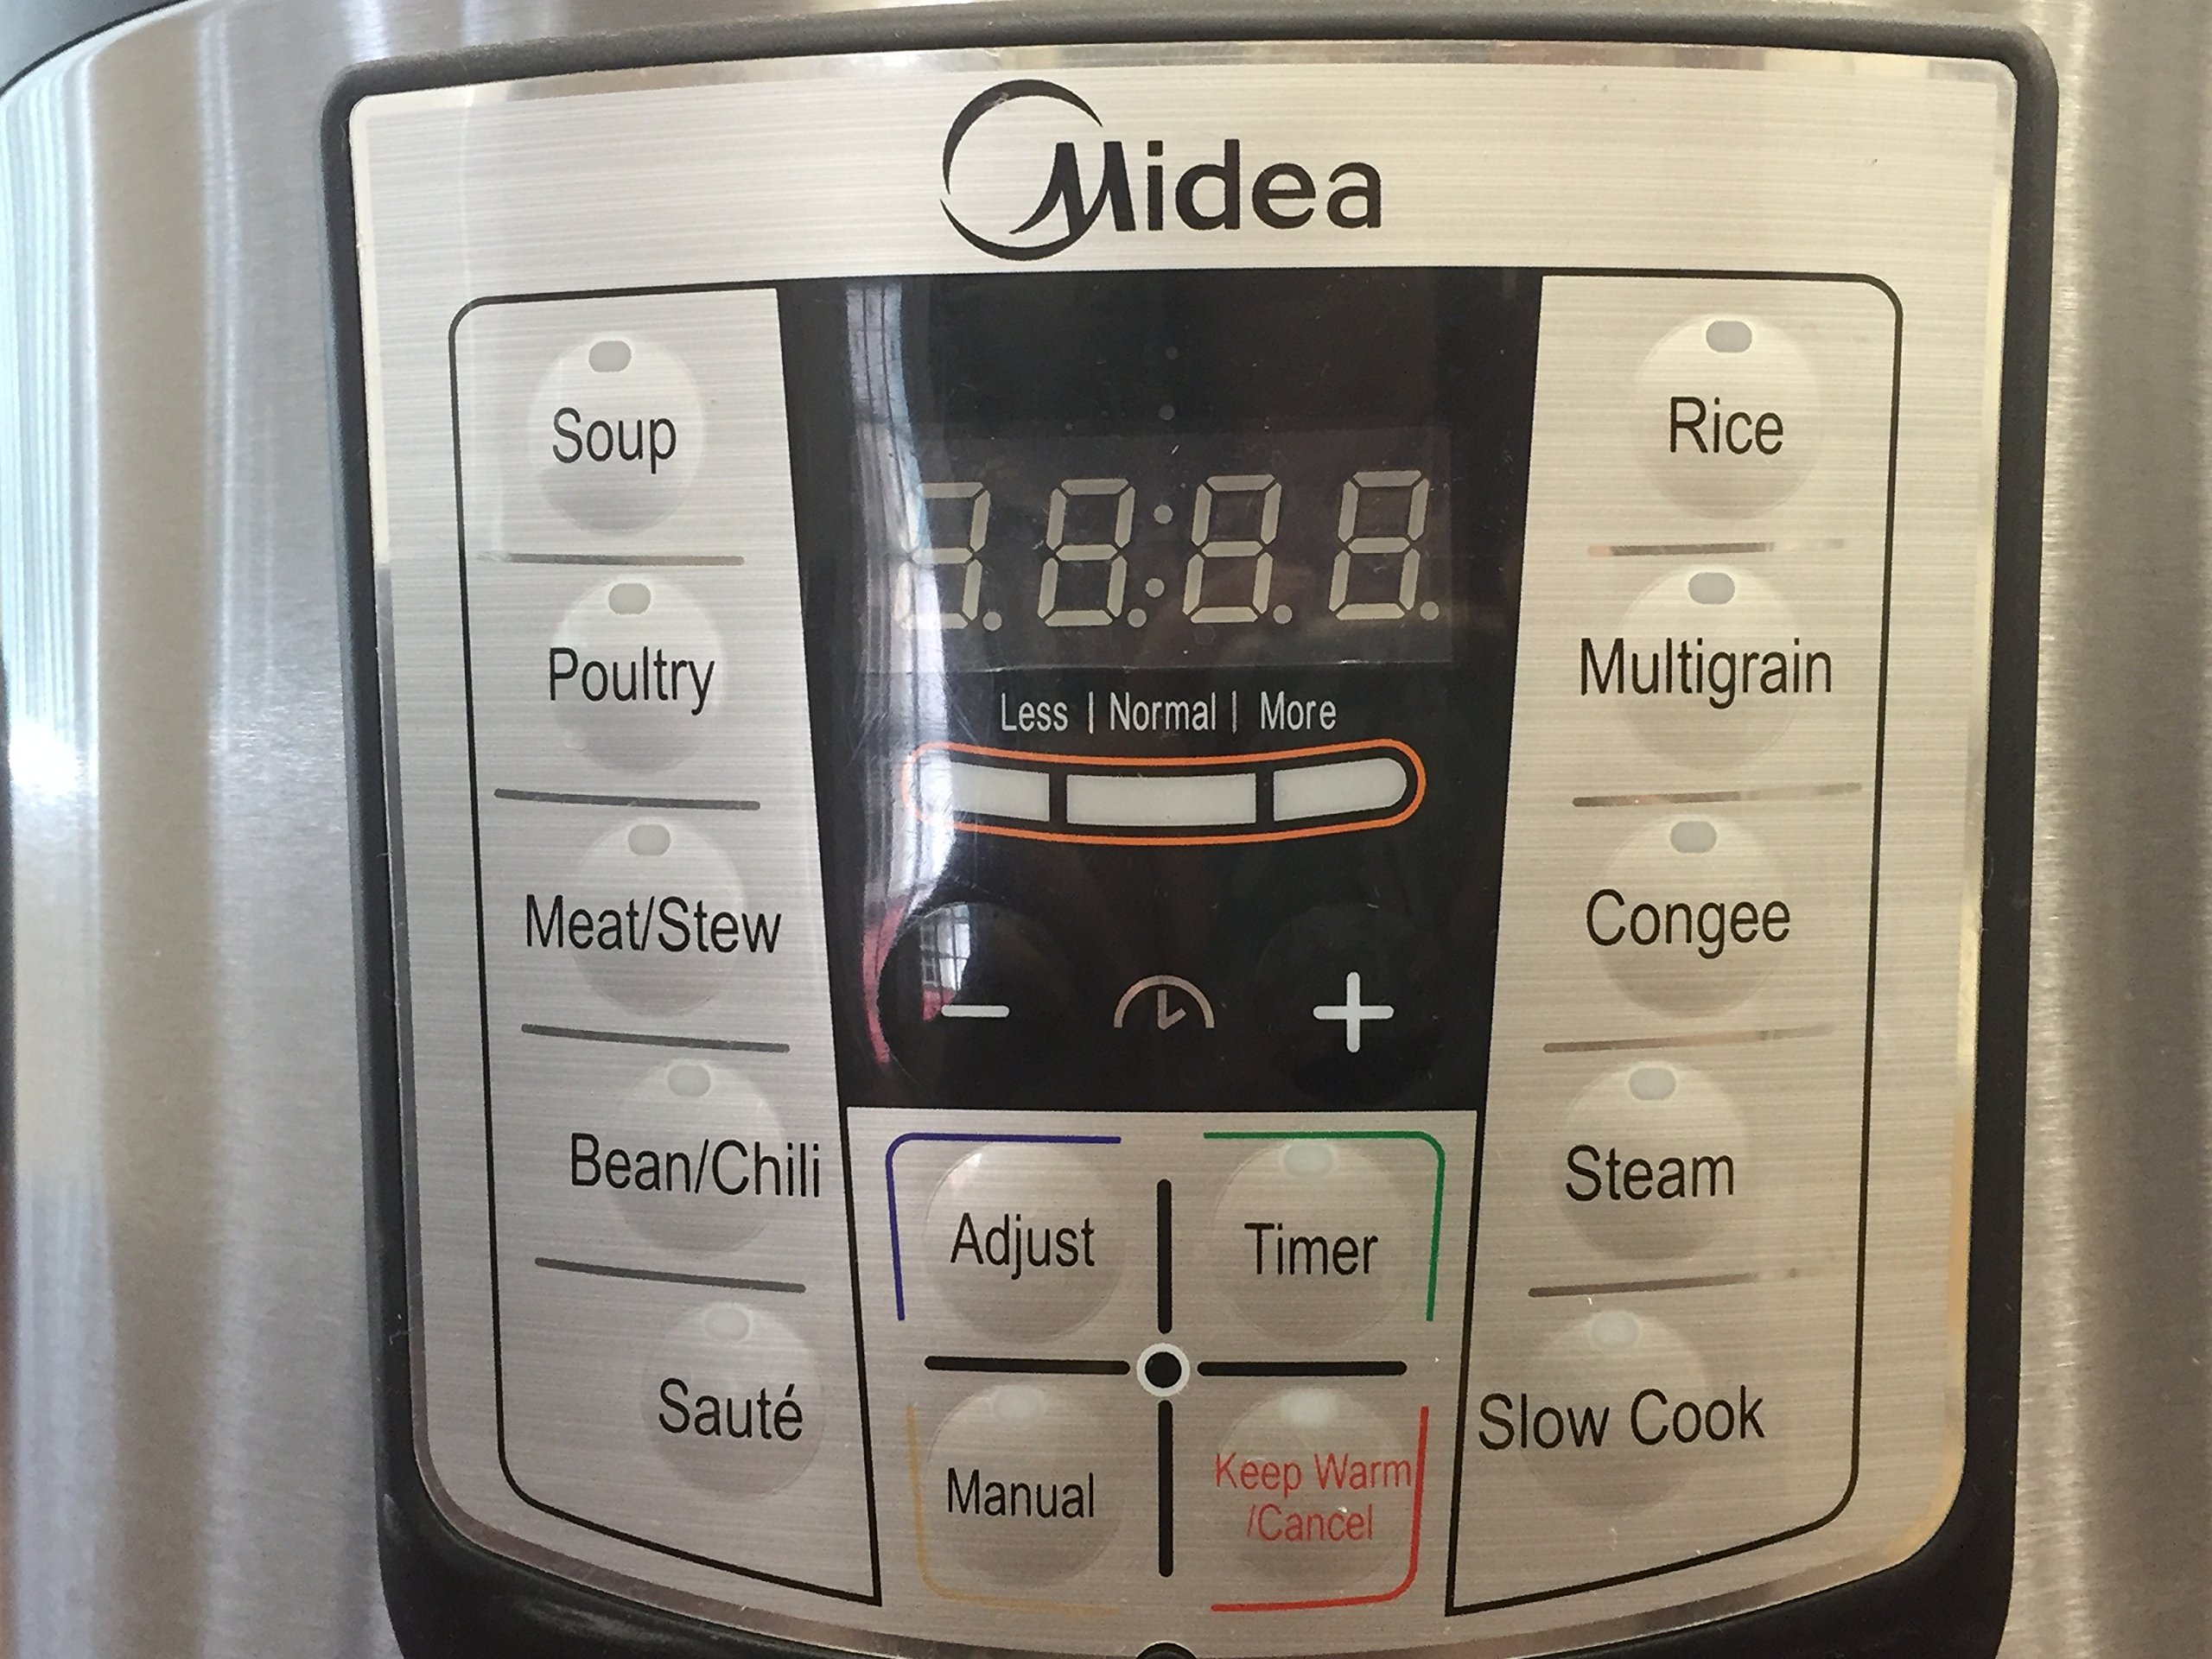 MIDEA 6 Qt 6 in 1 Programmable Electric Pressure Cooker, Meat/Stew, Poultry, Steam, Slow Cook, Rice, Beans/Chili, Congee, Soup, Multi Grain, Sauté